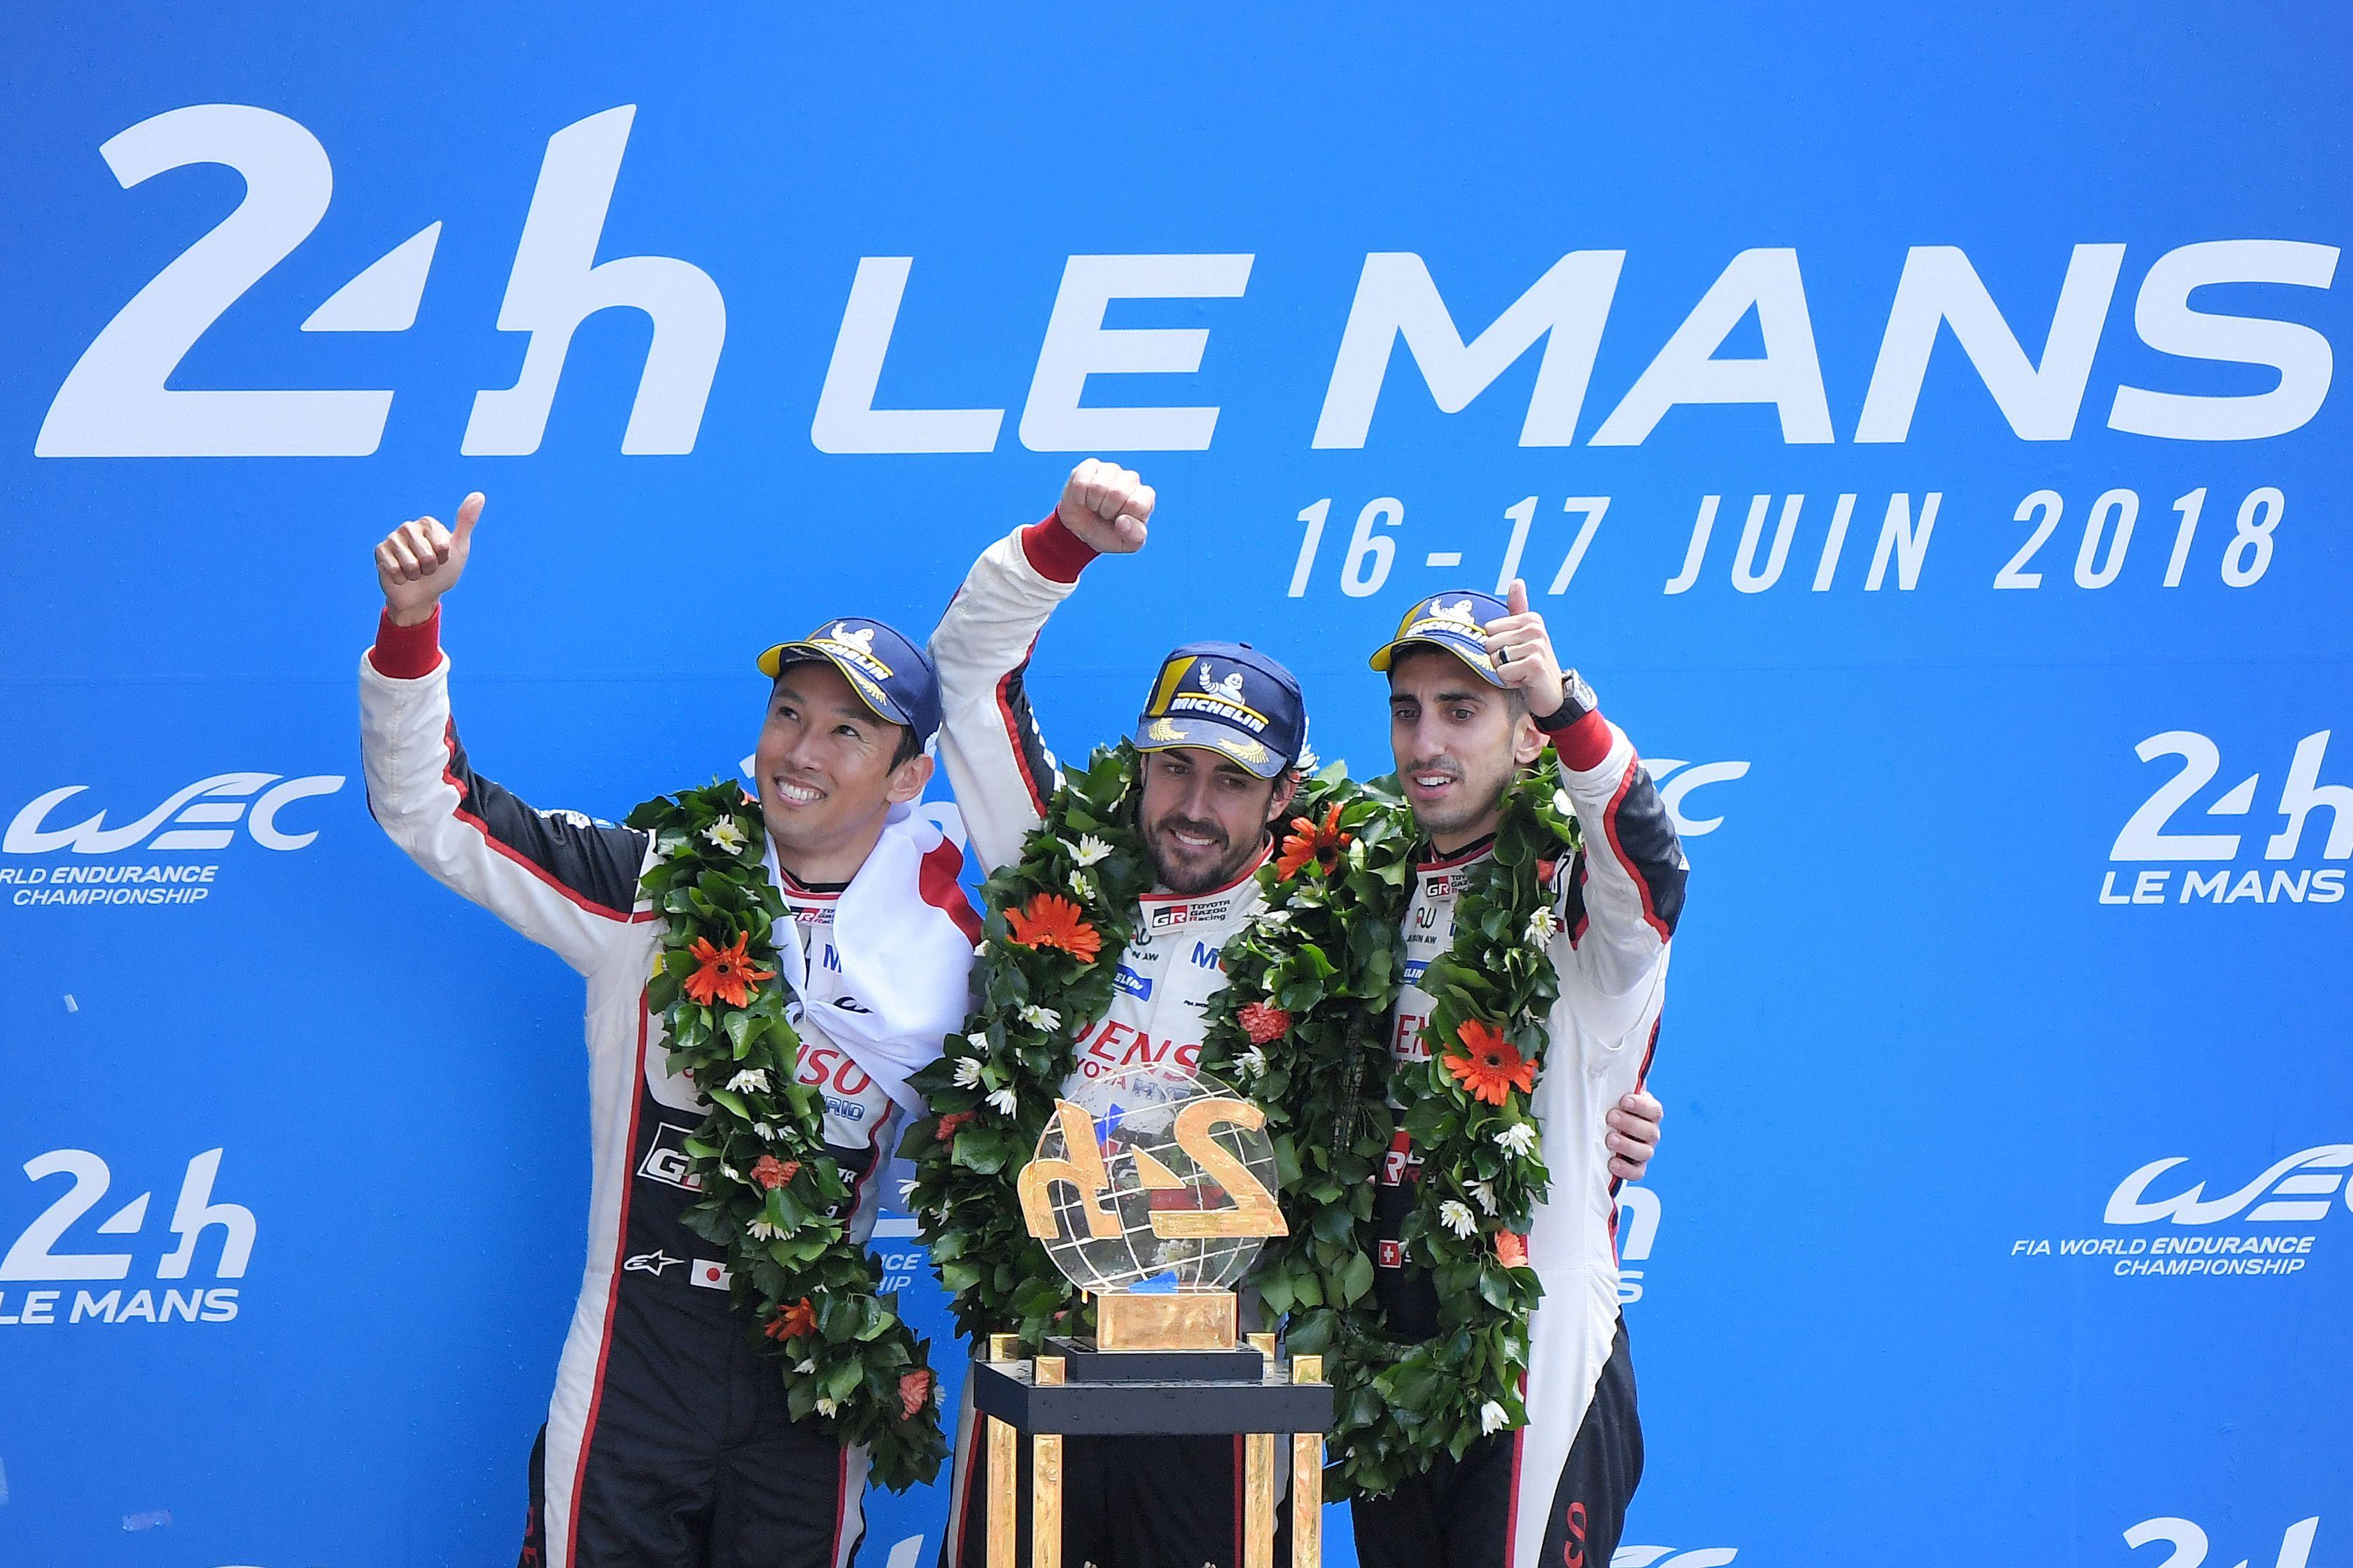 Fernando Alonso wins Le Mans with Toyota